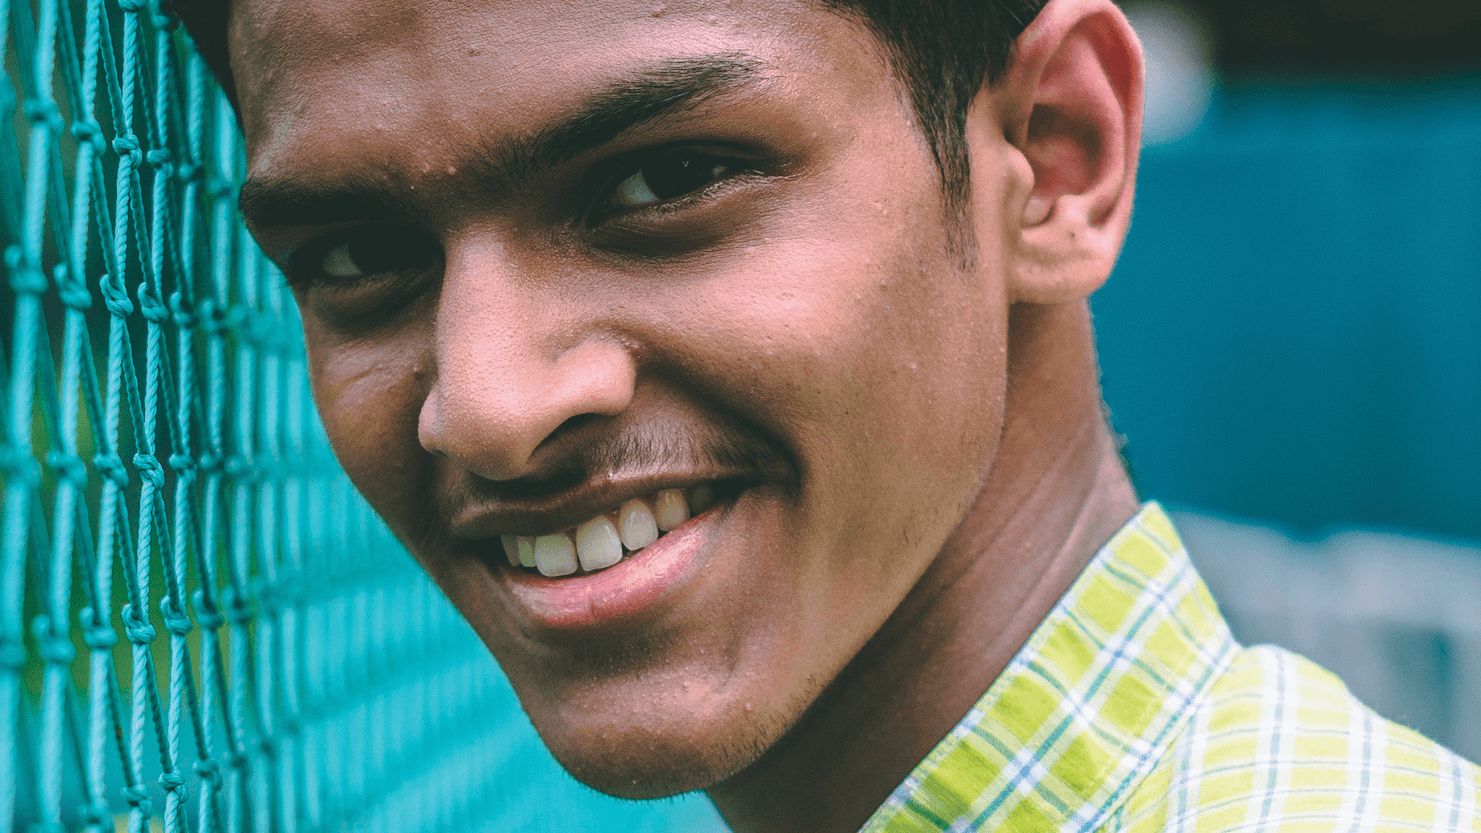 Abhijeet, a young man from India